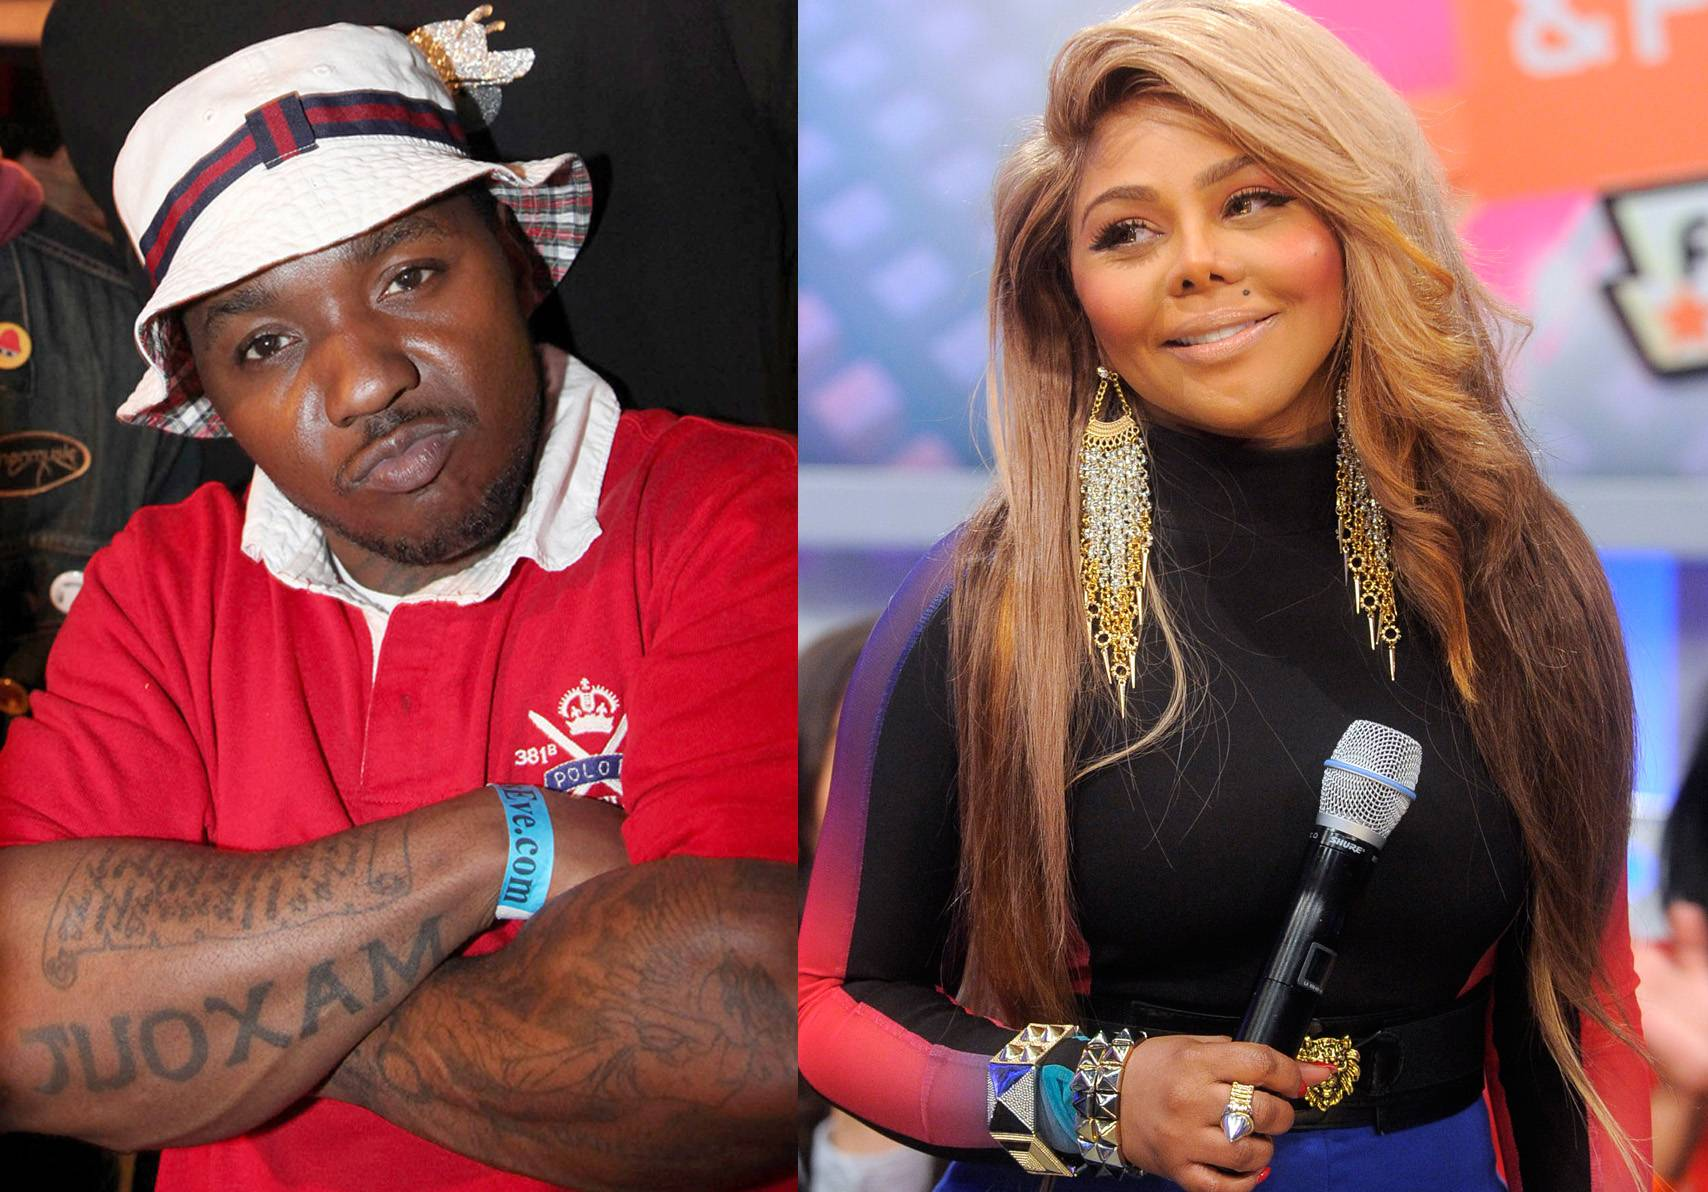 Lil Cease vs. Lil Kim - Kim and Cease's rift isn't rap related, it's personal. Cease took the stand in her 2005 perjury trial, which resulted in her serving one year fed time. Kim has since said she felt betrayed by her old Junior M.A.F.I.A. homie and has reportedly rebuffed his attempts to reconcile.(Photos from left: Johnny Nunez/WireImage, John Ricard/BET)